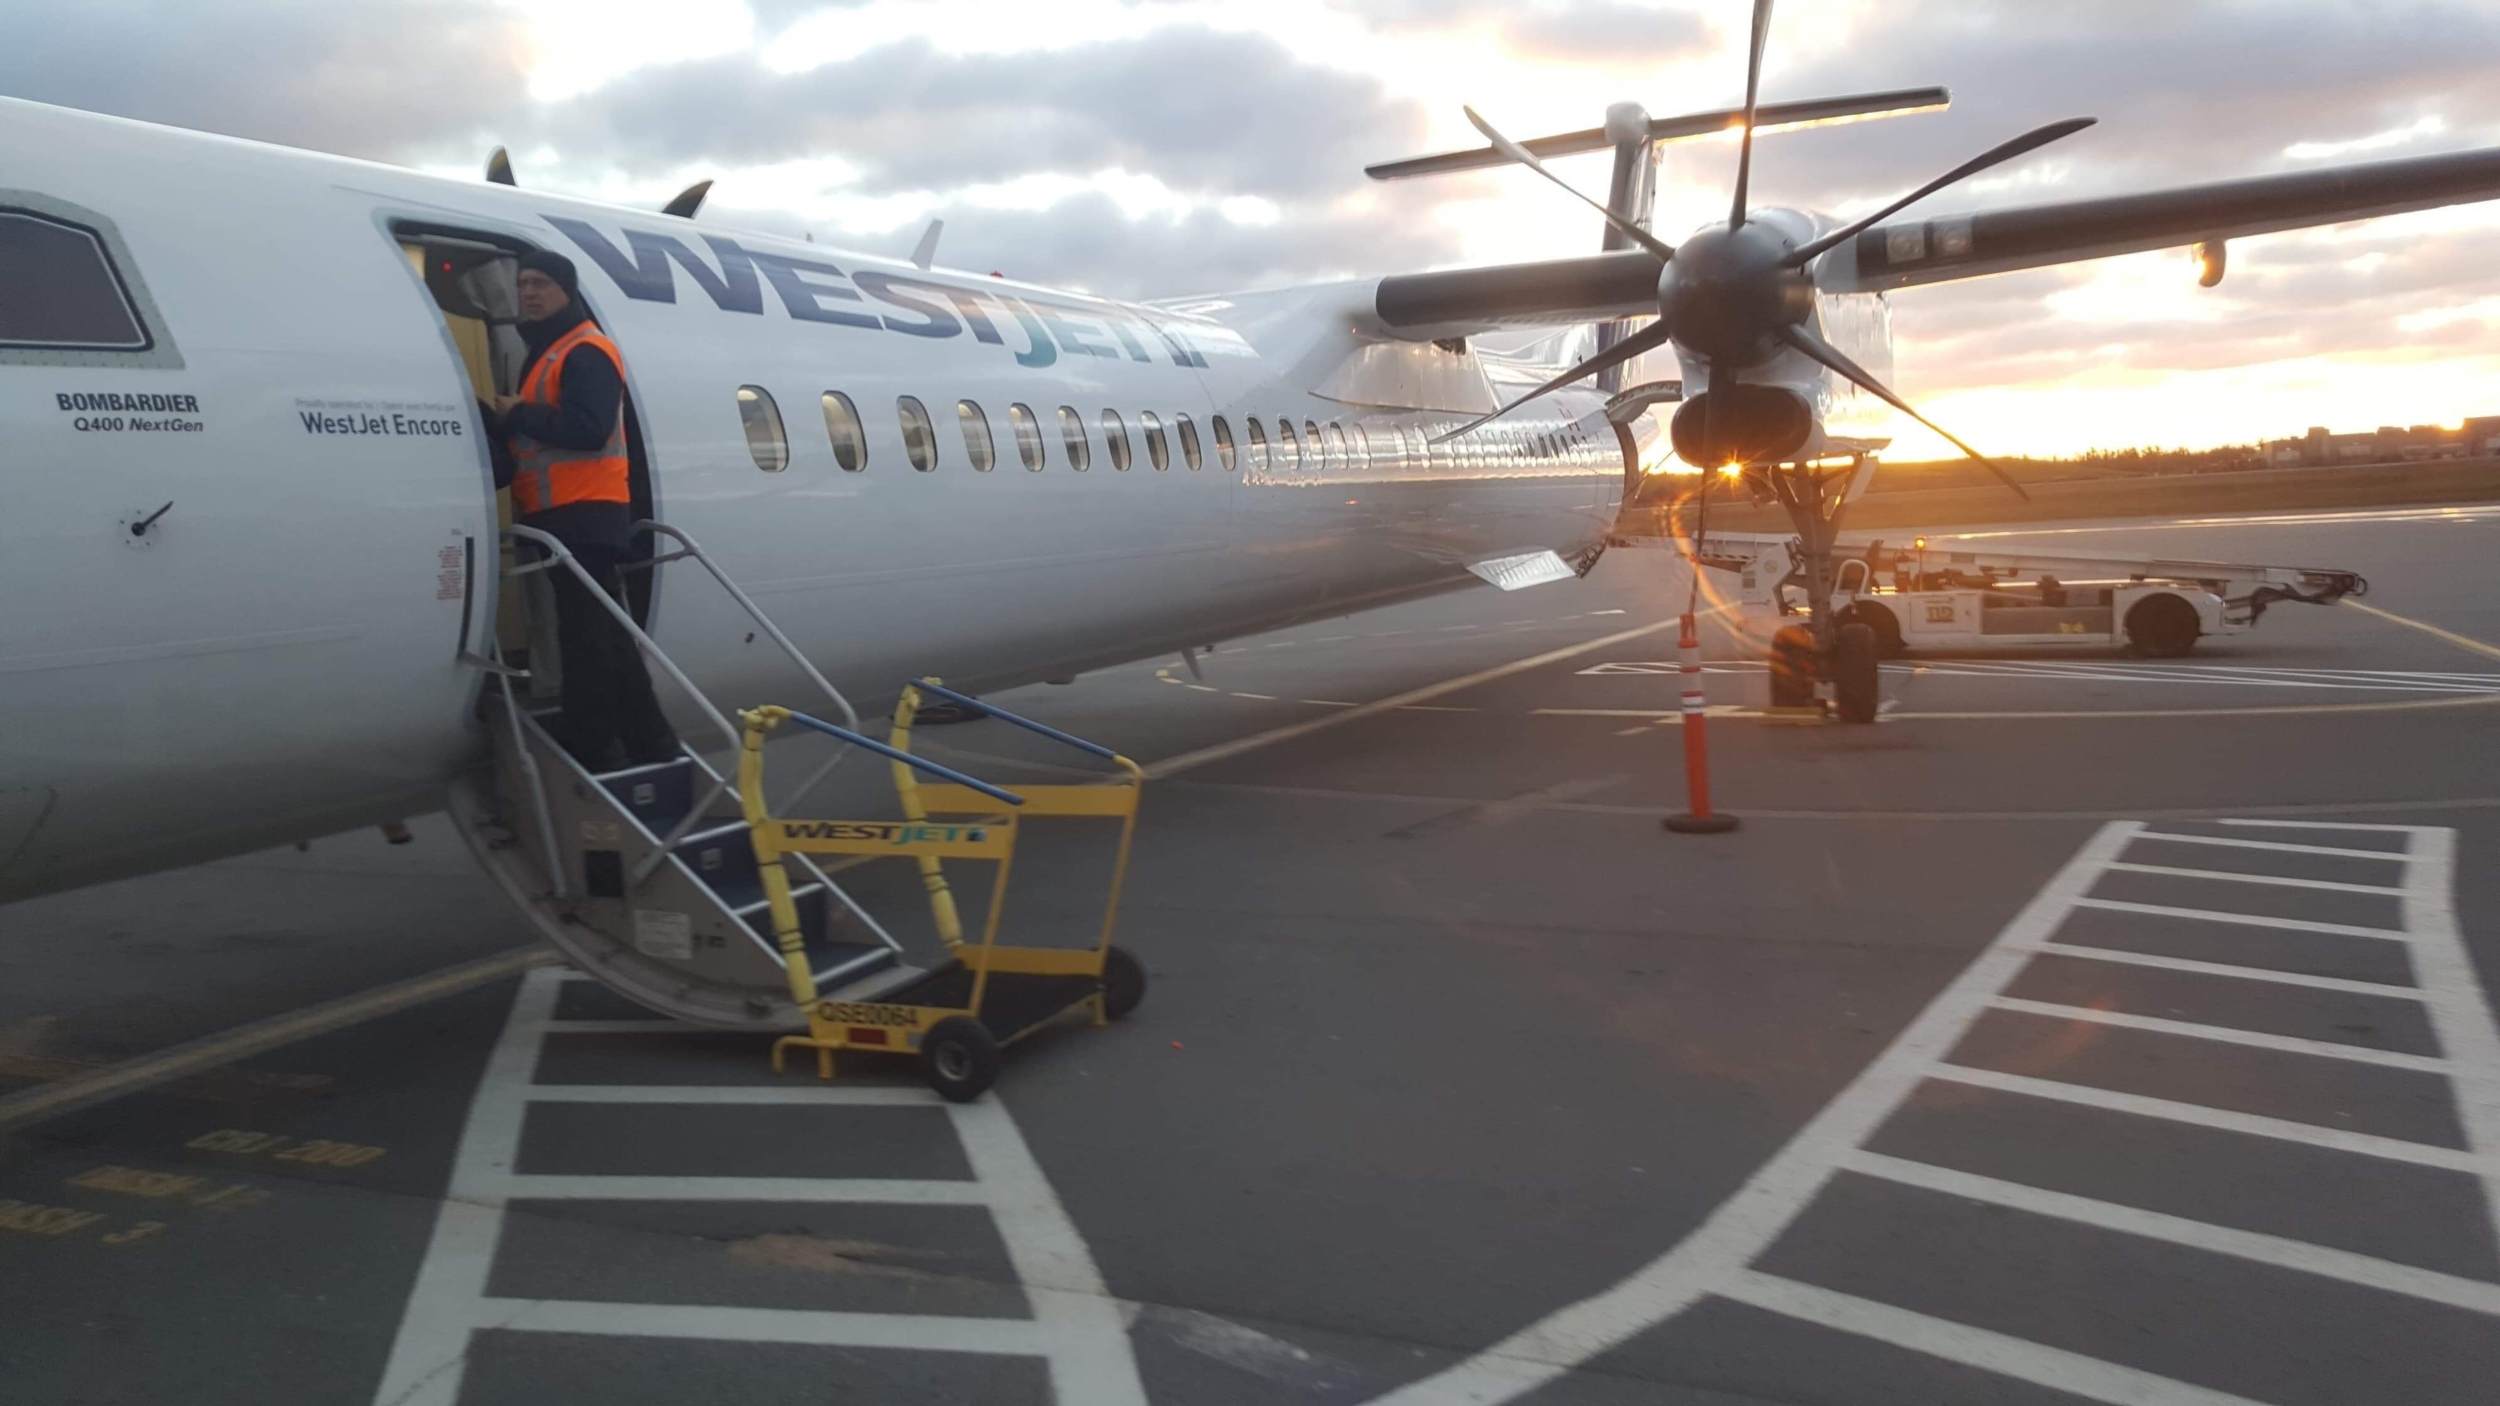 A WestJet airplane sits on the tarmac at the Halifax Stanfield International Airport.